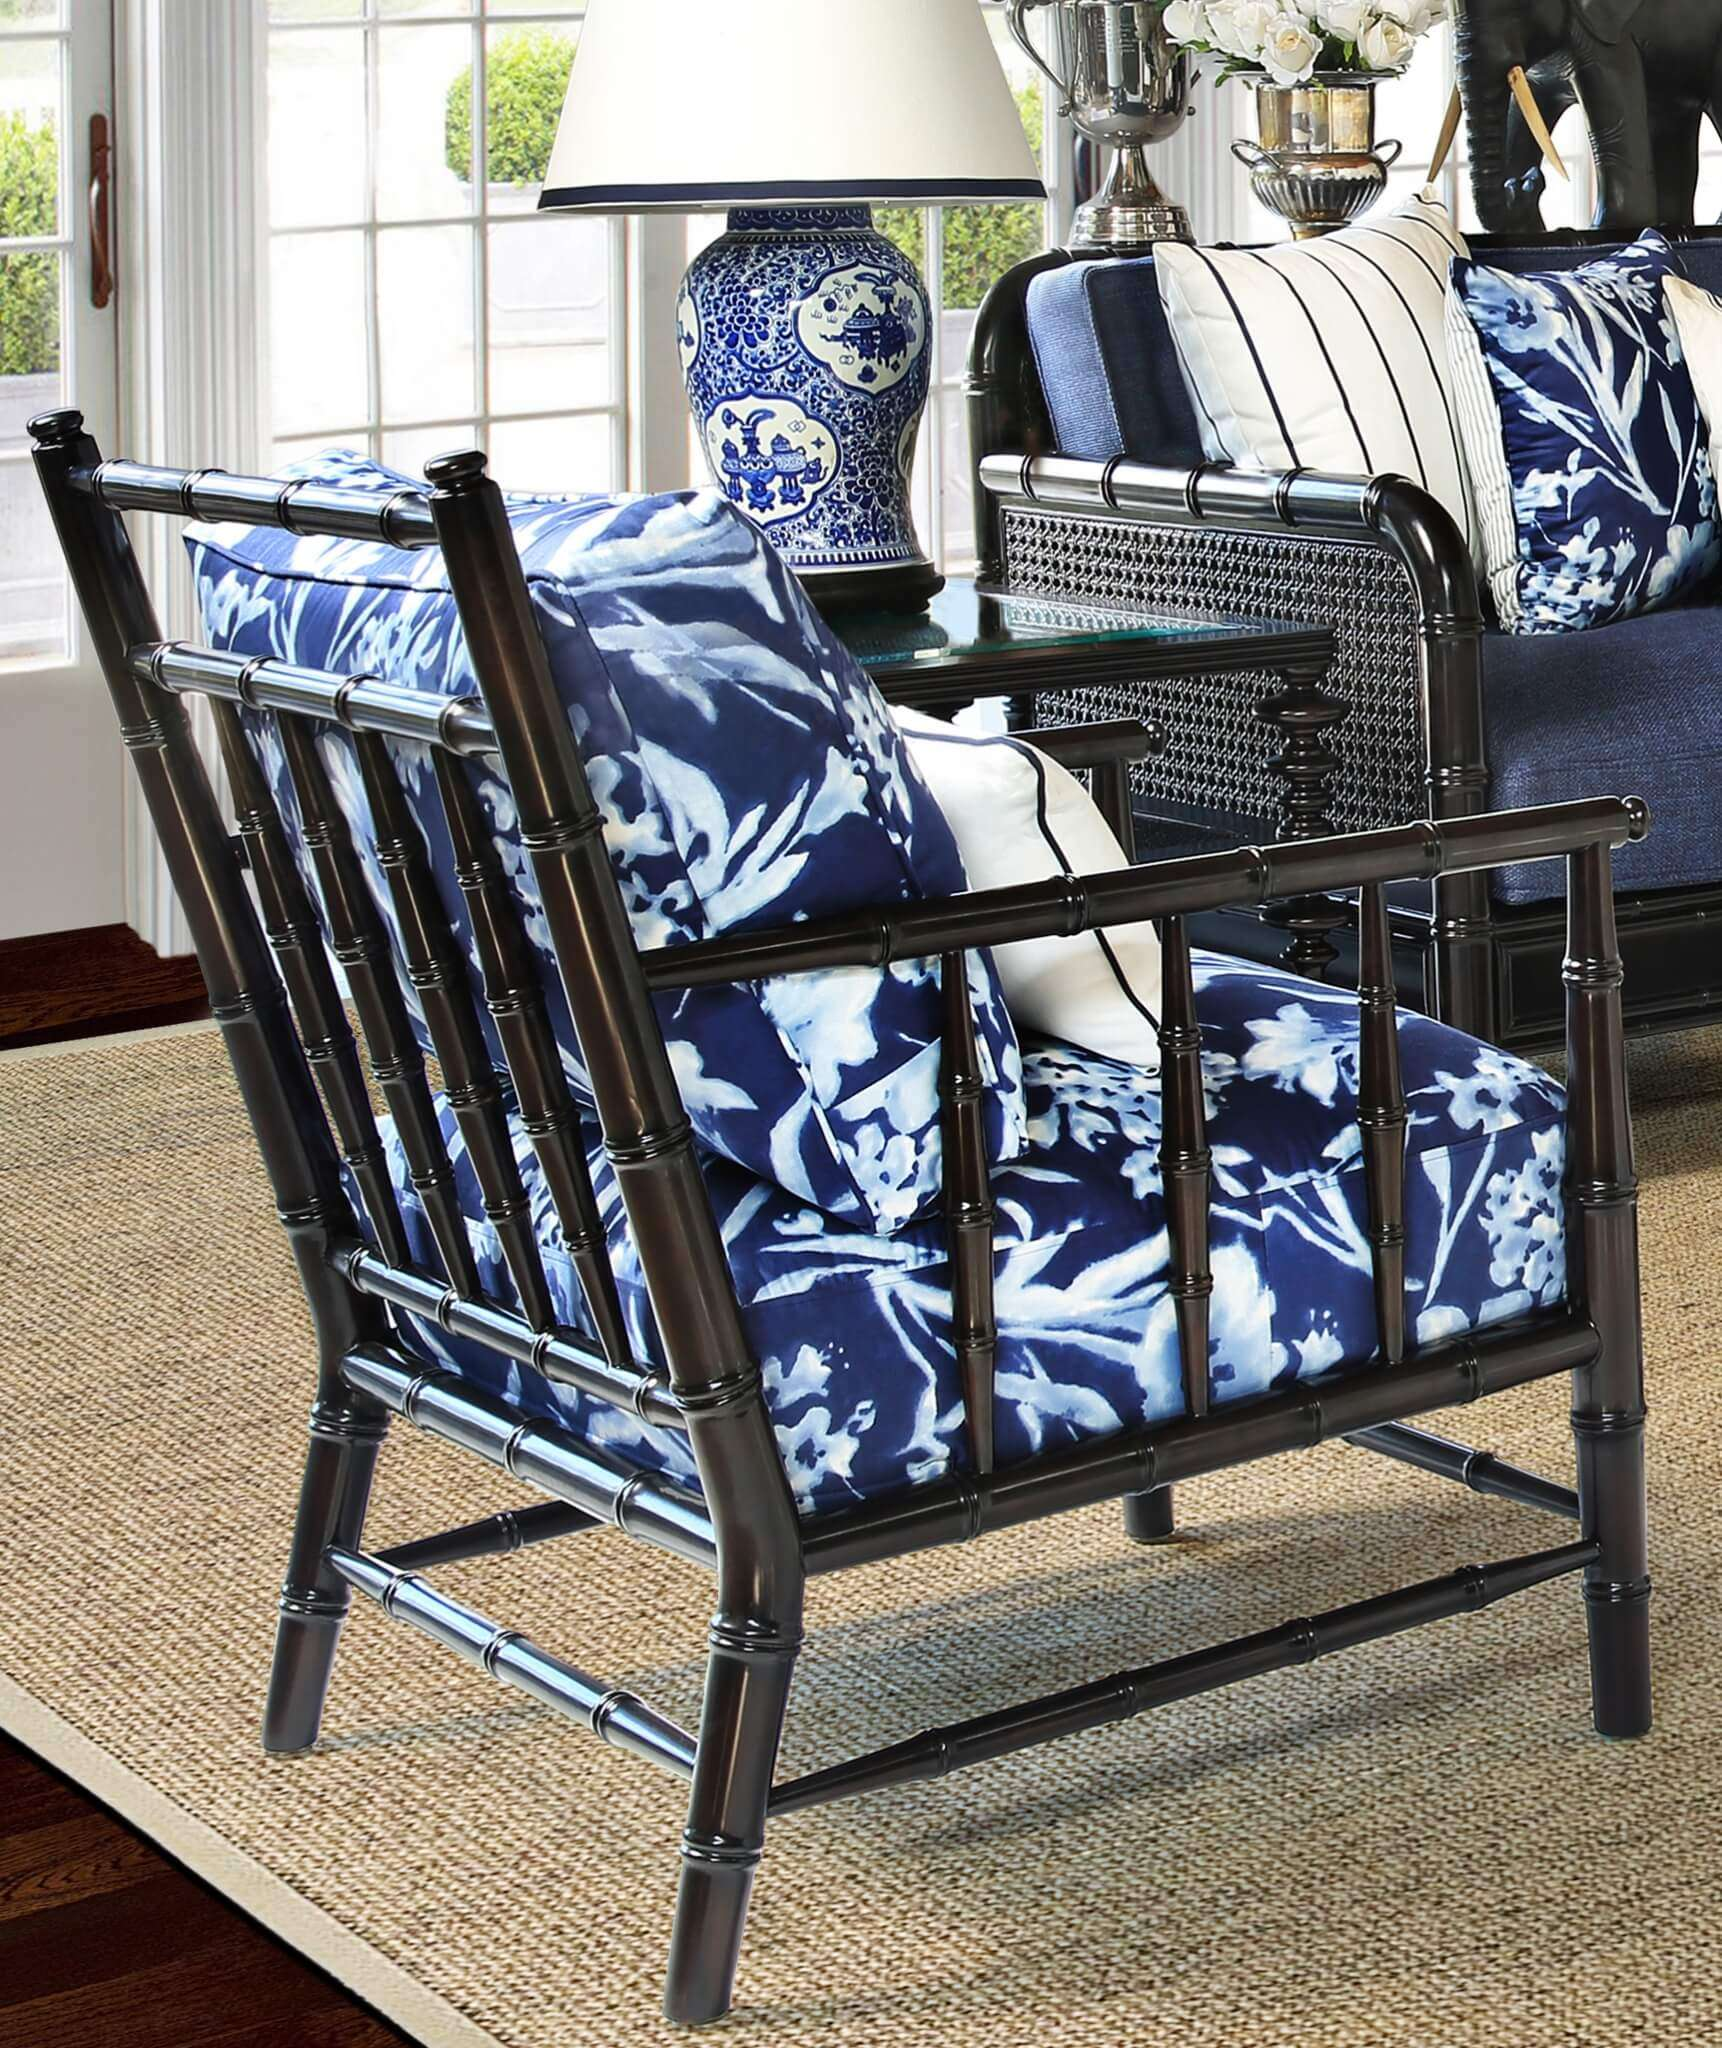 H CAPE COLONY CLUB CHAIR  - STUART MEMBERY HOME COLLECTION